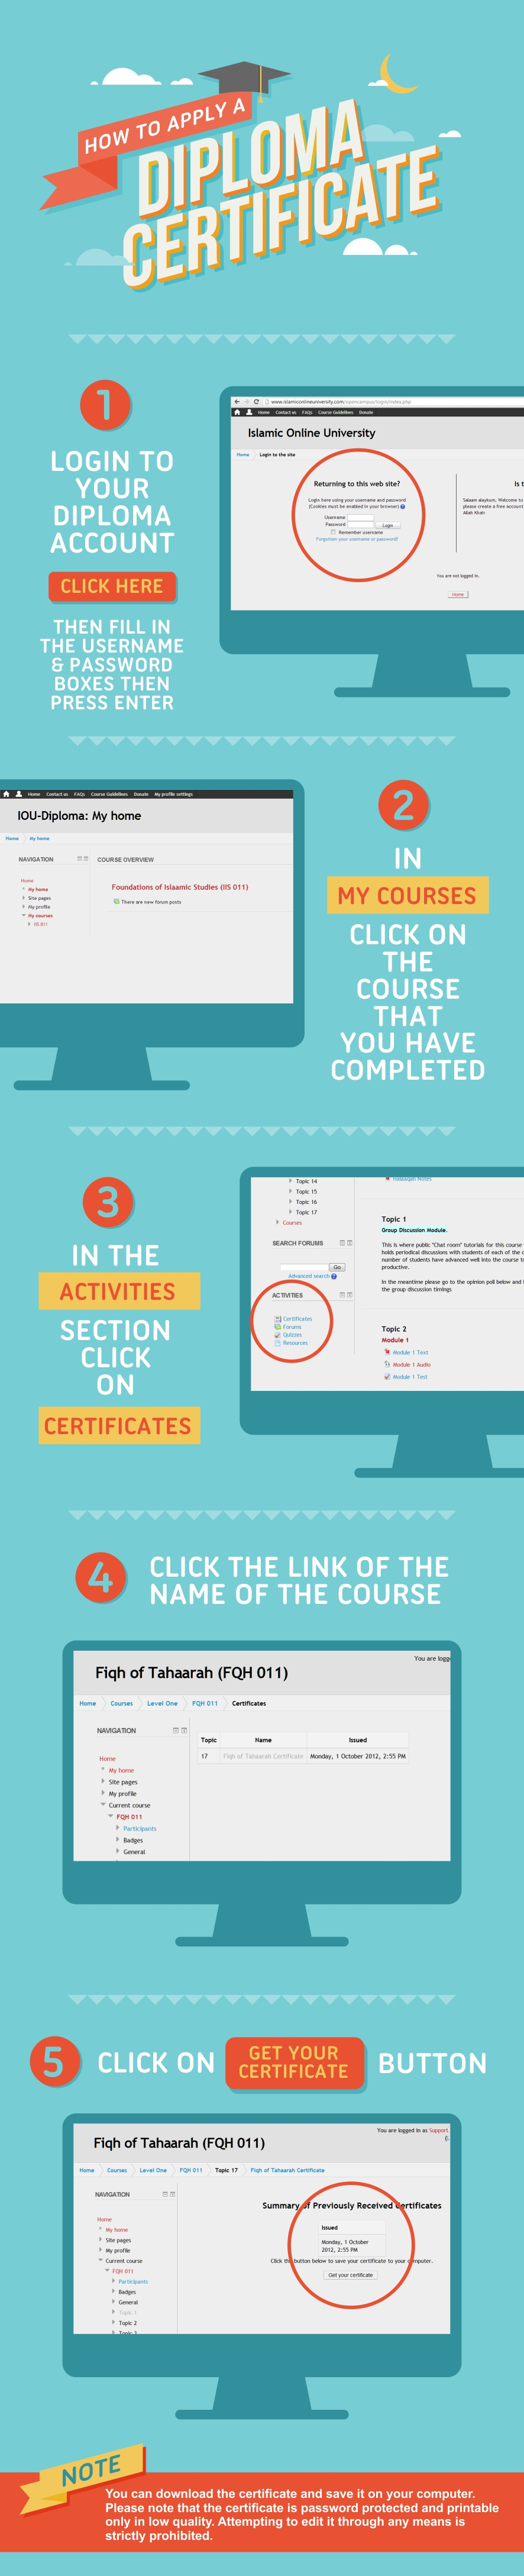 How to apply for certificate